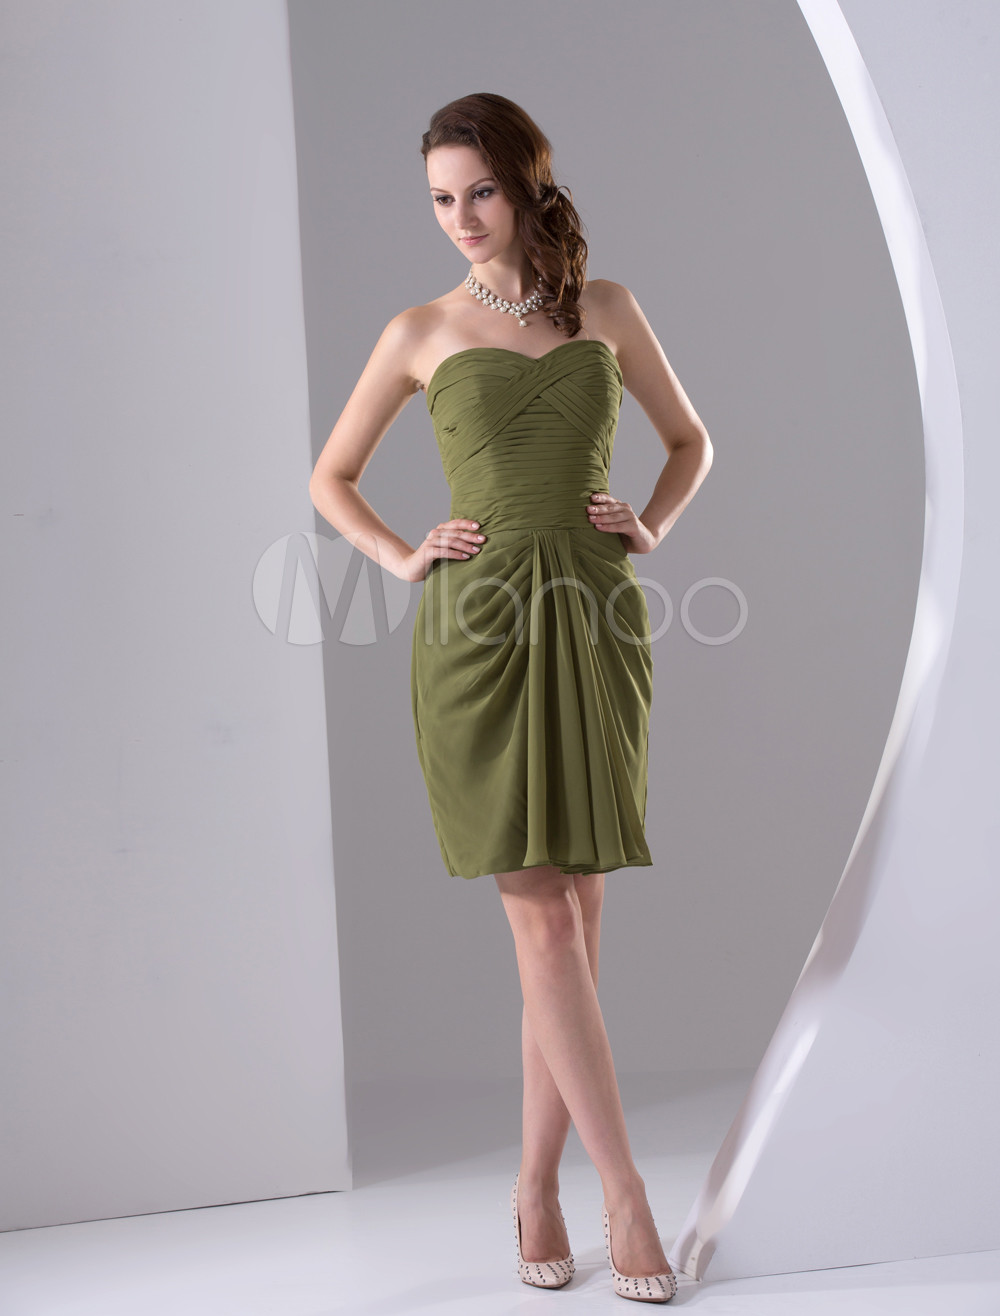 Army Green Mini Length Strapless Chiffon Bridesmaid Dress